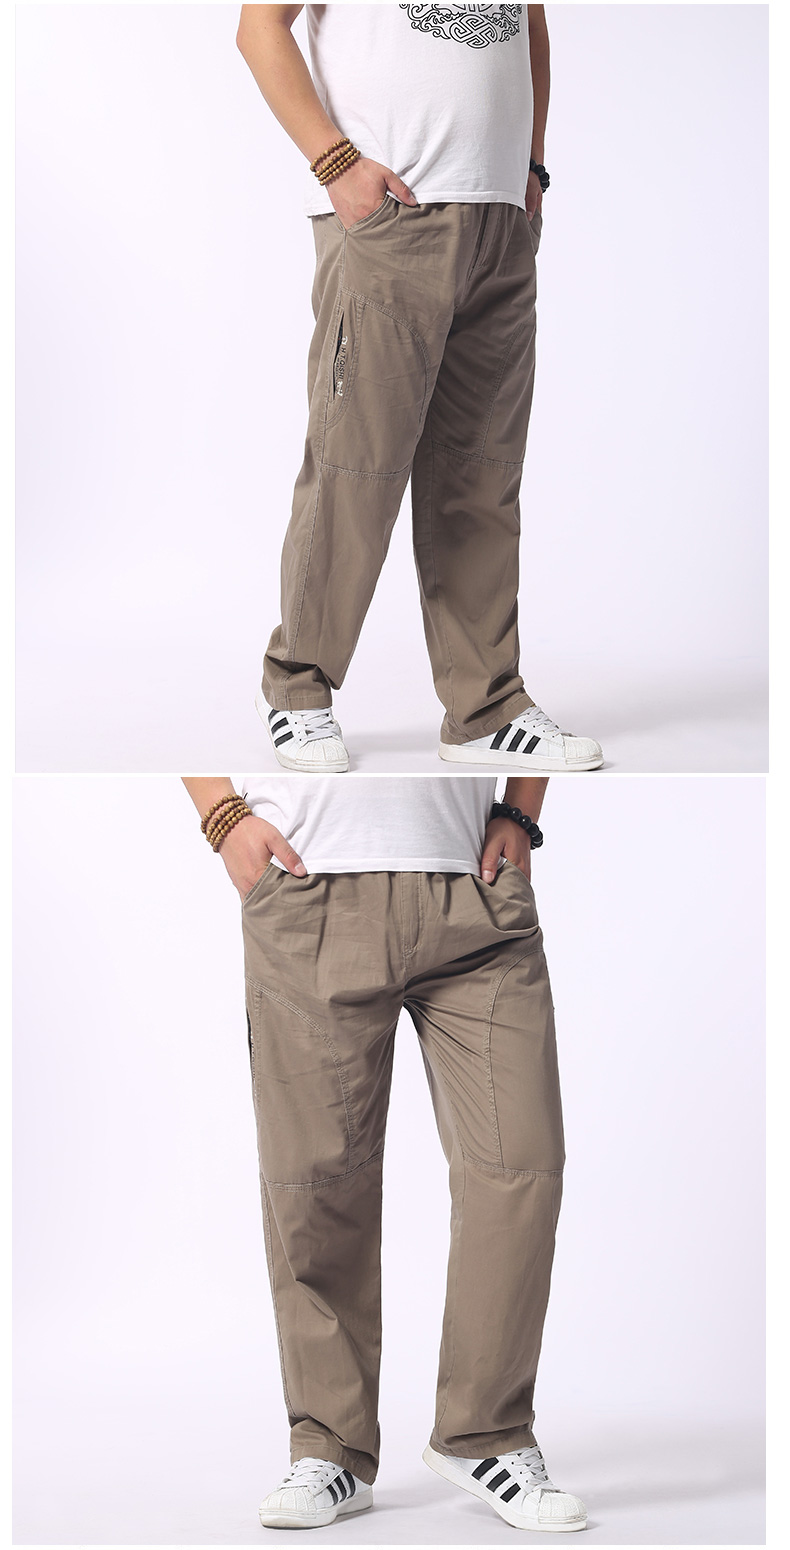 Man Loose Fitting Cargo Pants Yellow Black Gray Khaki  Overall For Mens Cotton Comfort Trousers Elastic Waist Pant American Apparel (5)